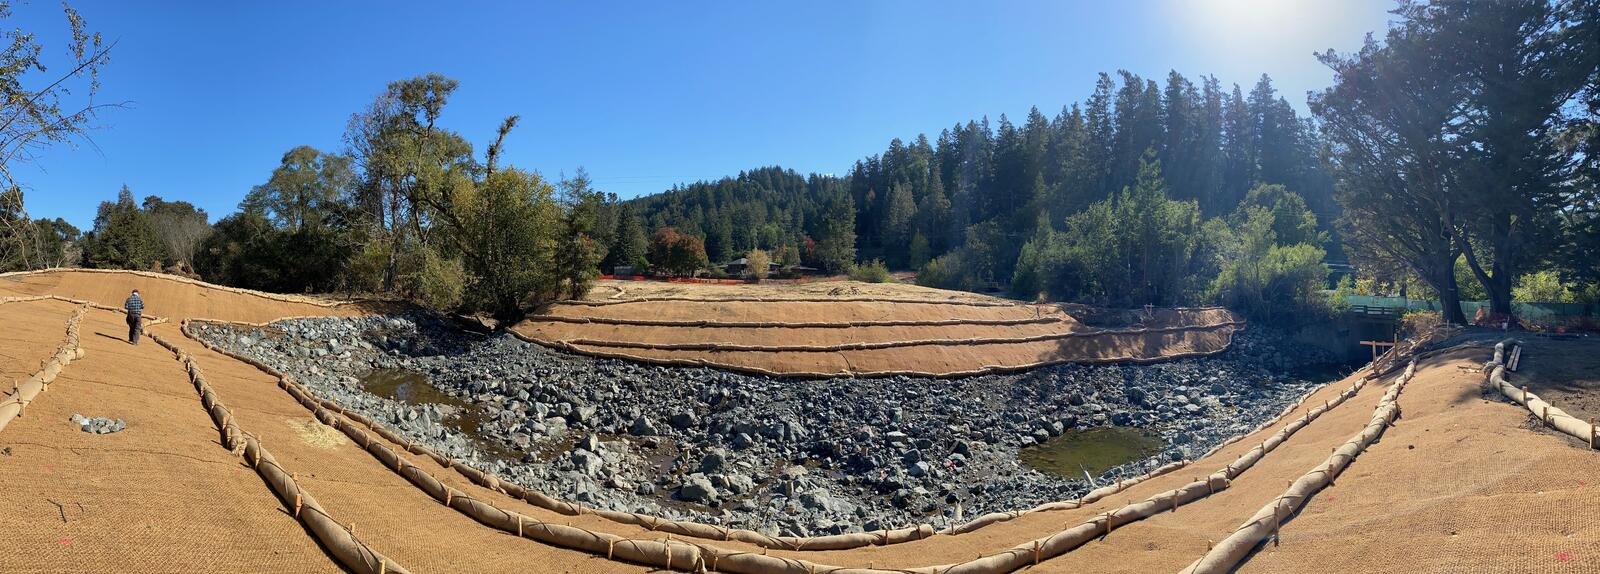 100-Year-Old Dam Removed From Former Golf Course for Salmon Migration